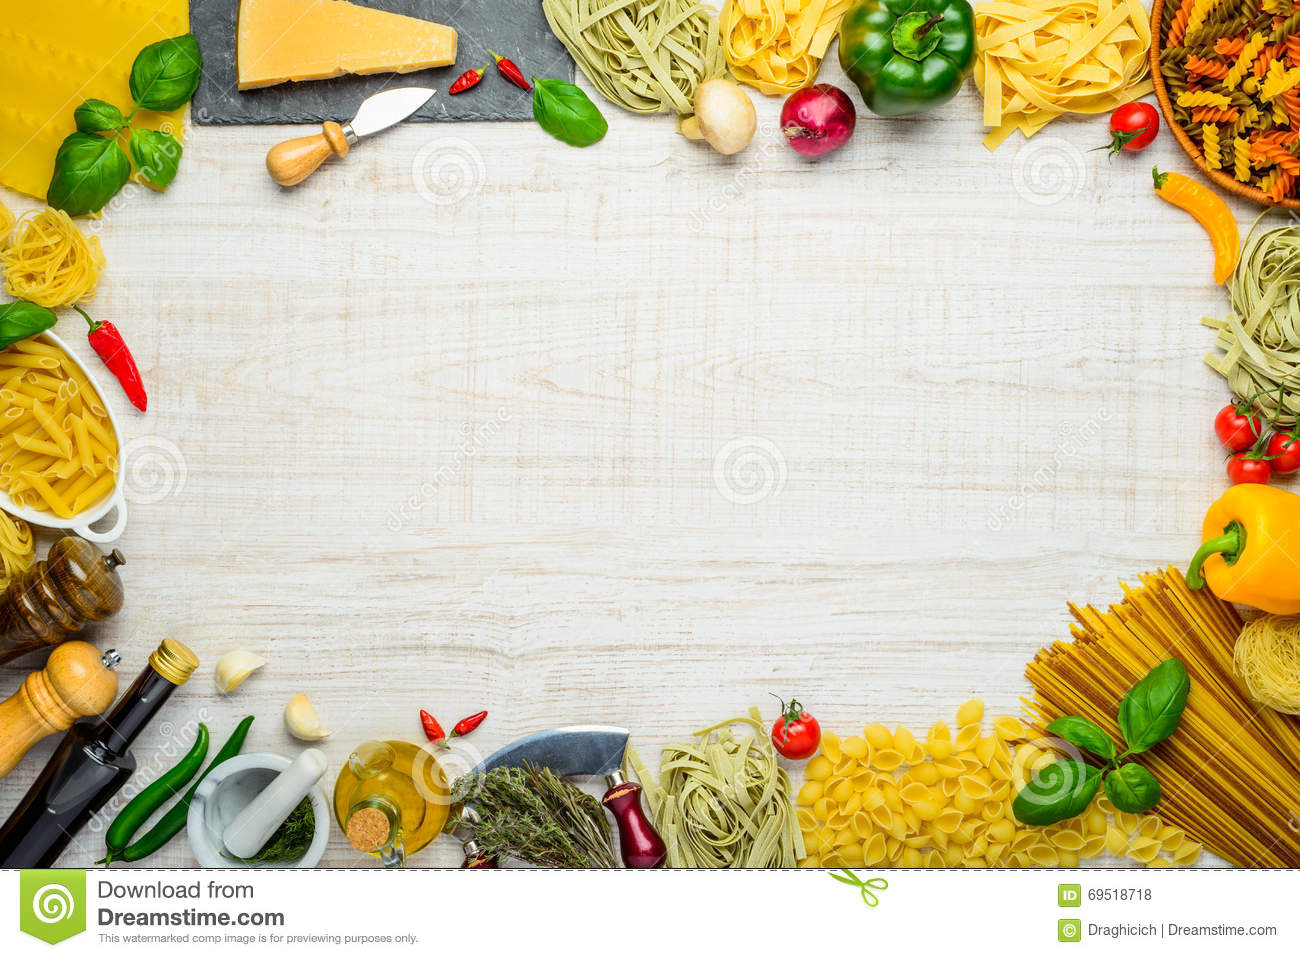 Italian Cuisine Copy Space Frame Stock Photo - Image: 69518718